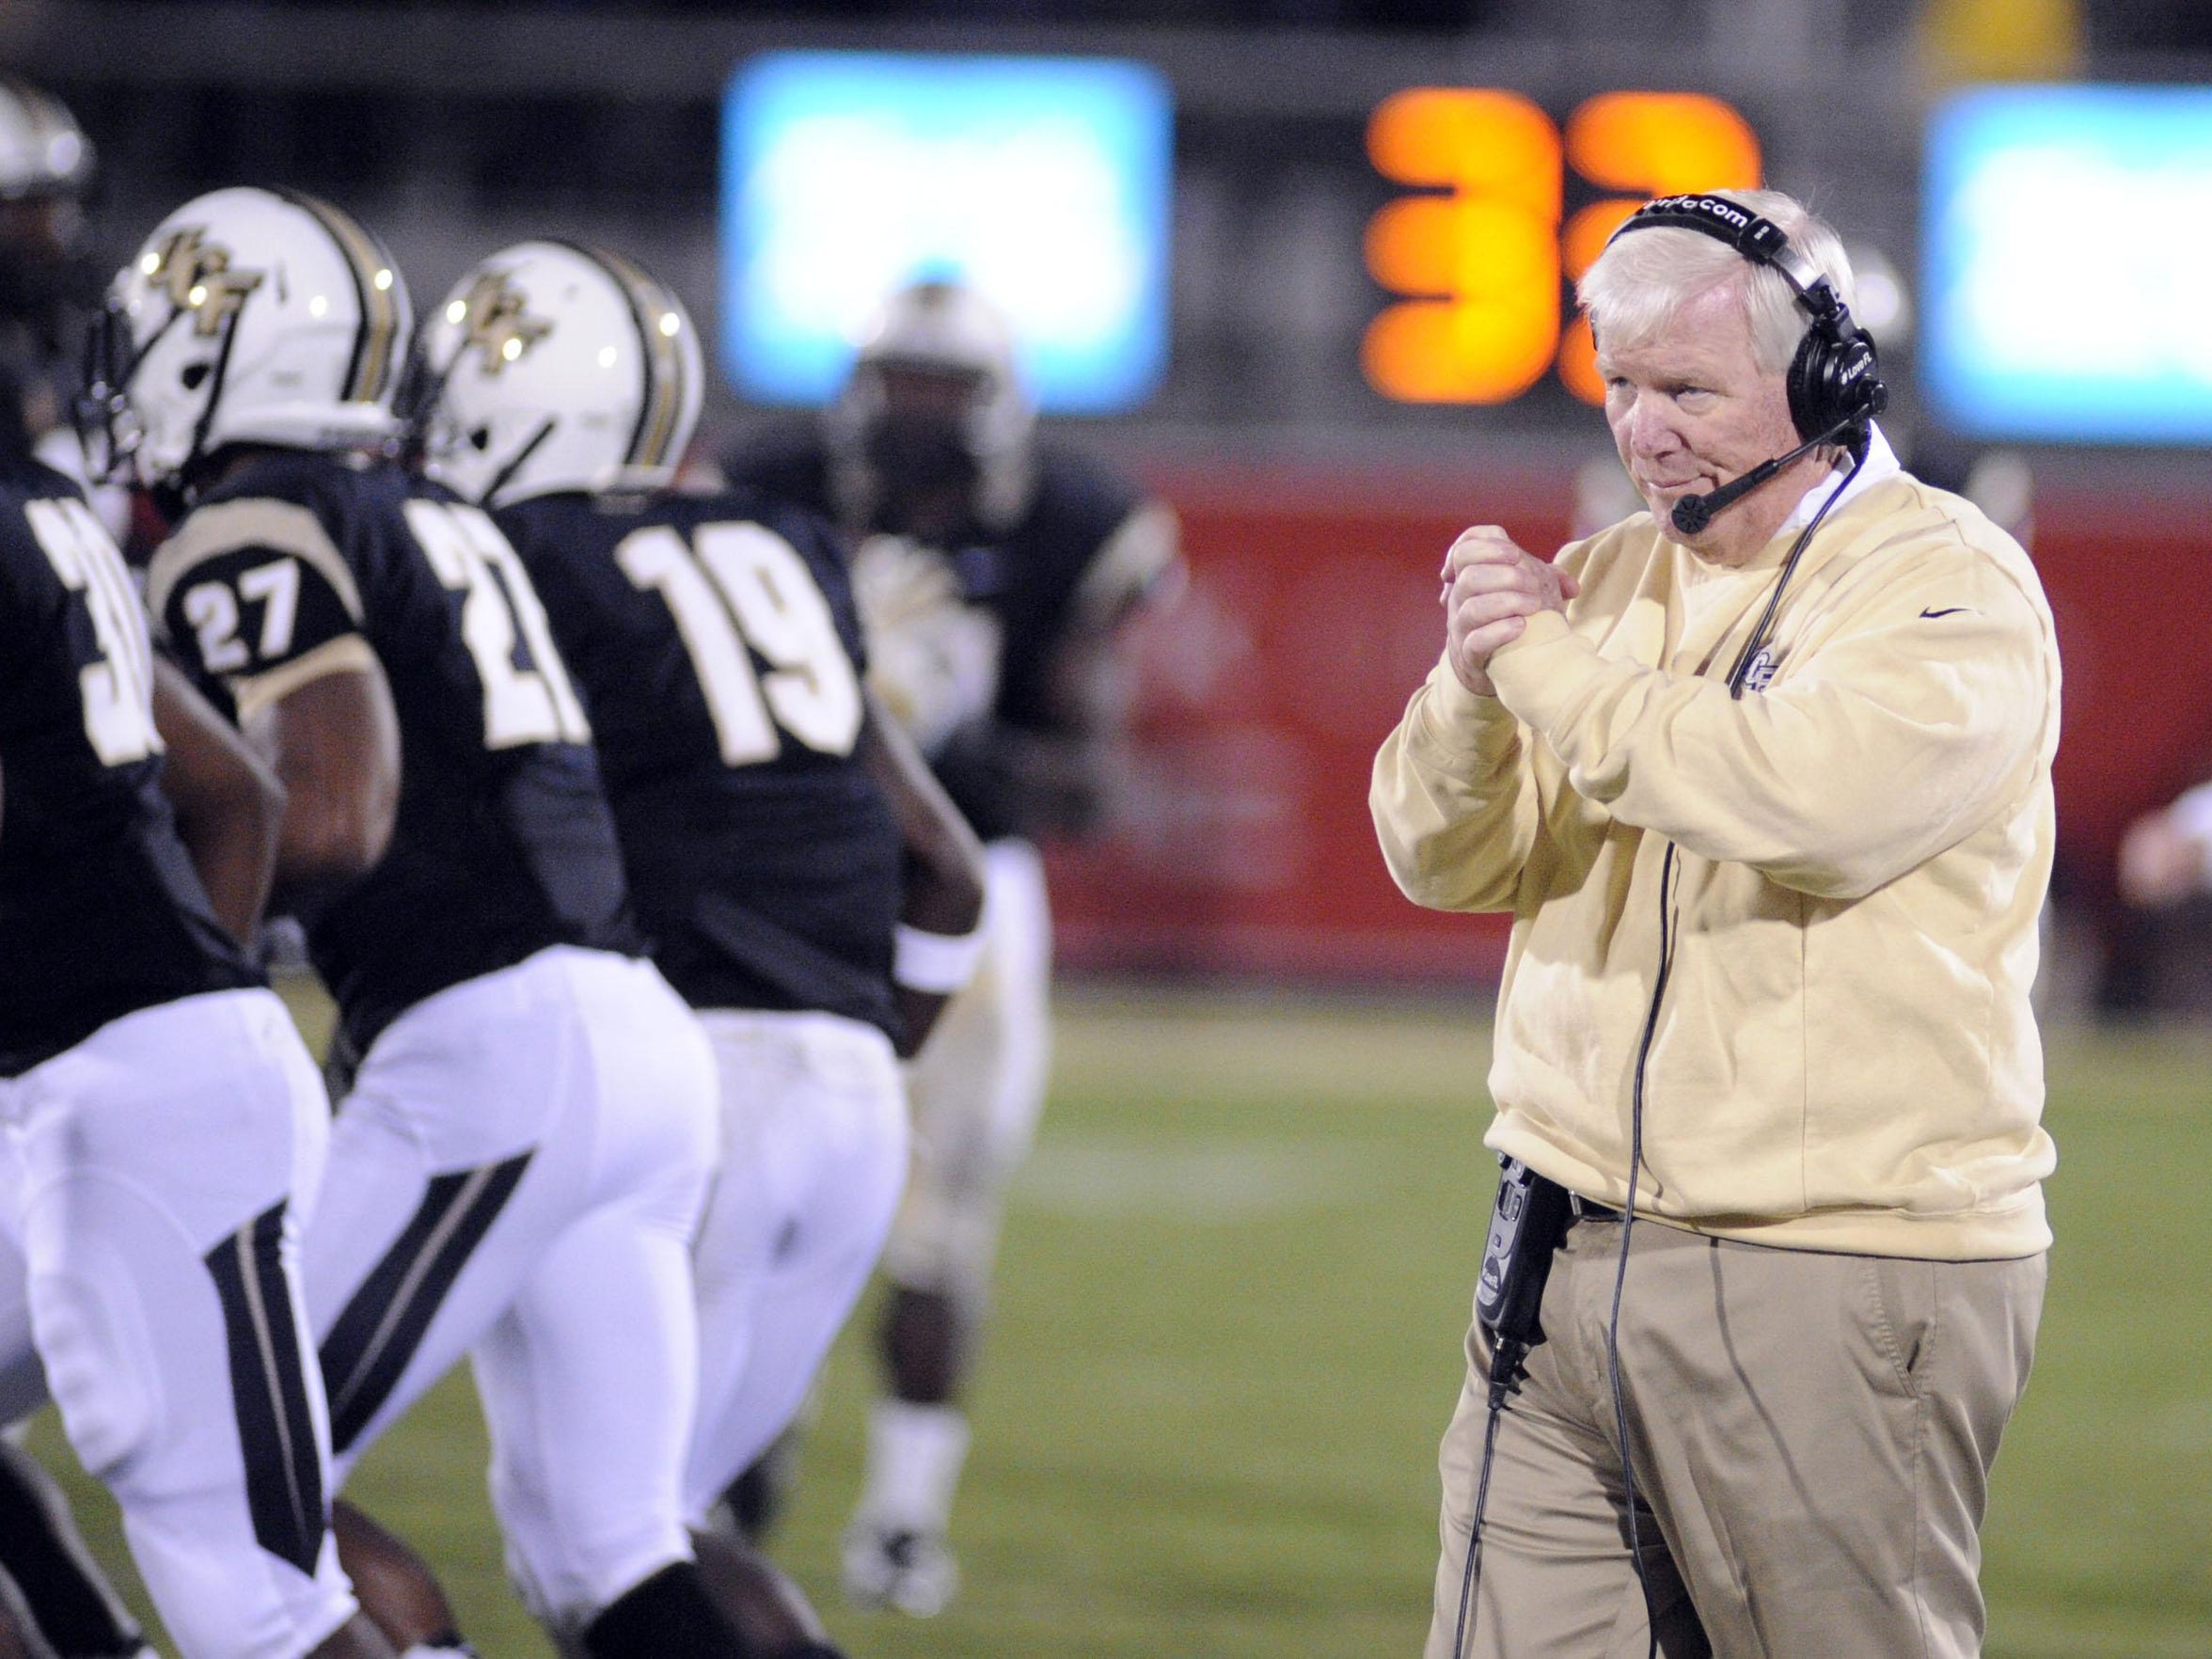 Former UCF head coach George O'Leary reacts on the